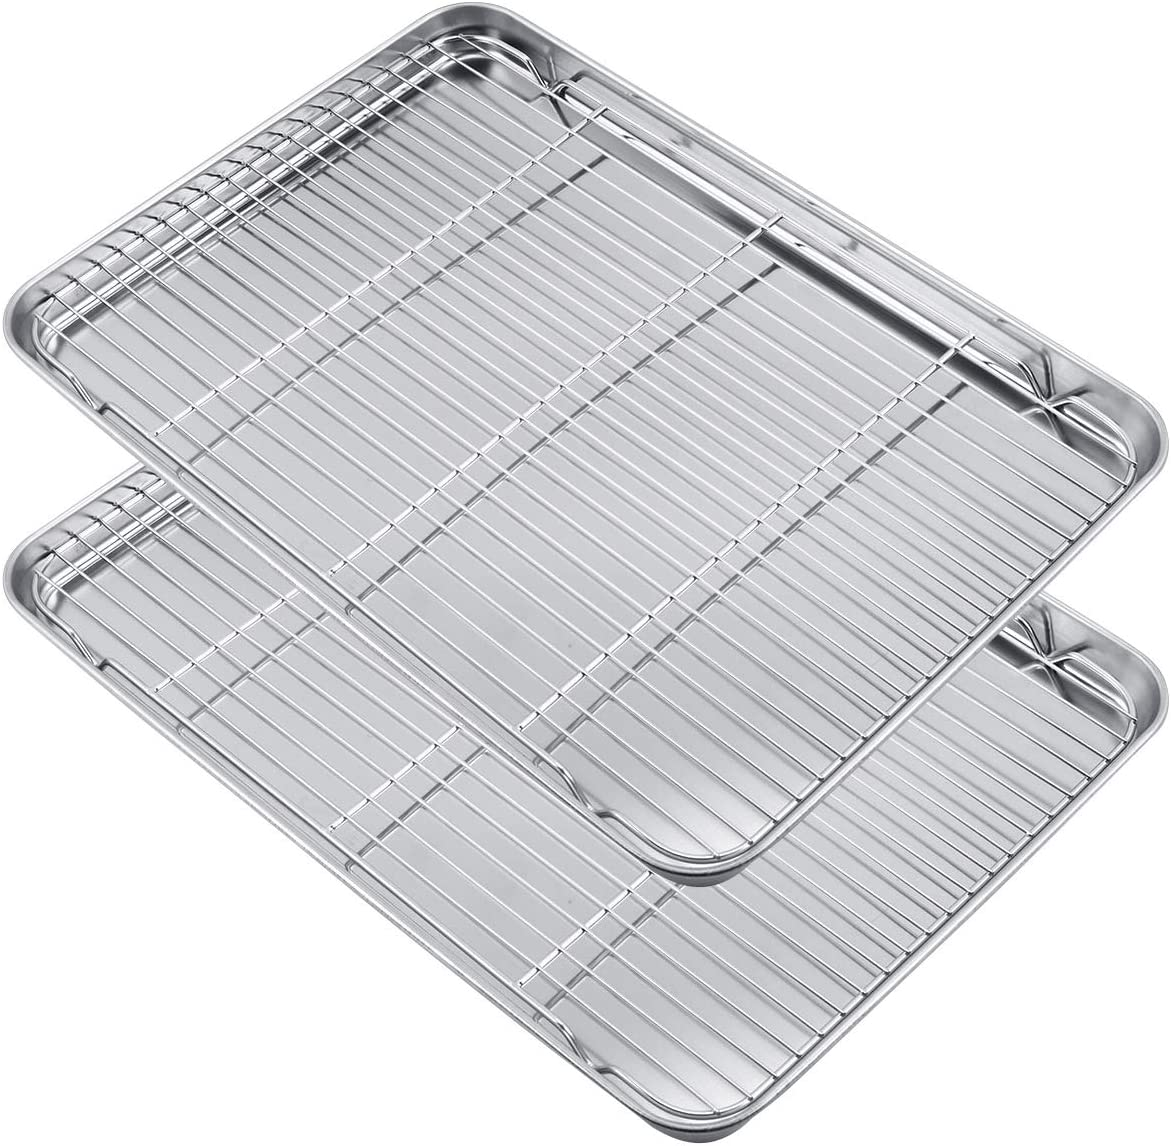 WEZVIX Large Baking Sheet with cooling rack Set of 4, Half Size Stainless Steel Baking Tray Cookie Sheet Oven Tray Pan 19.6 × 13.5 × 1.2 inches, Rust Free & Less Stick, Easy Clean & Dishwasher Safe